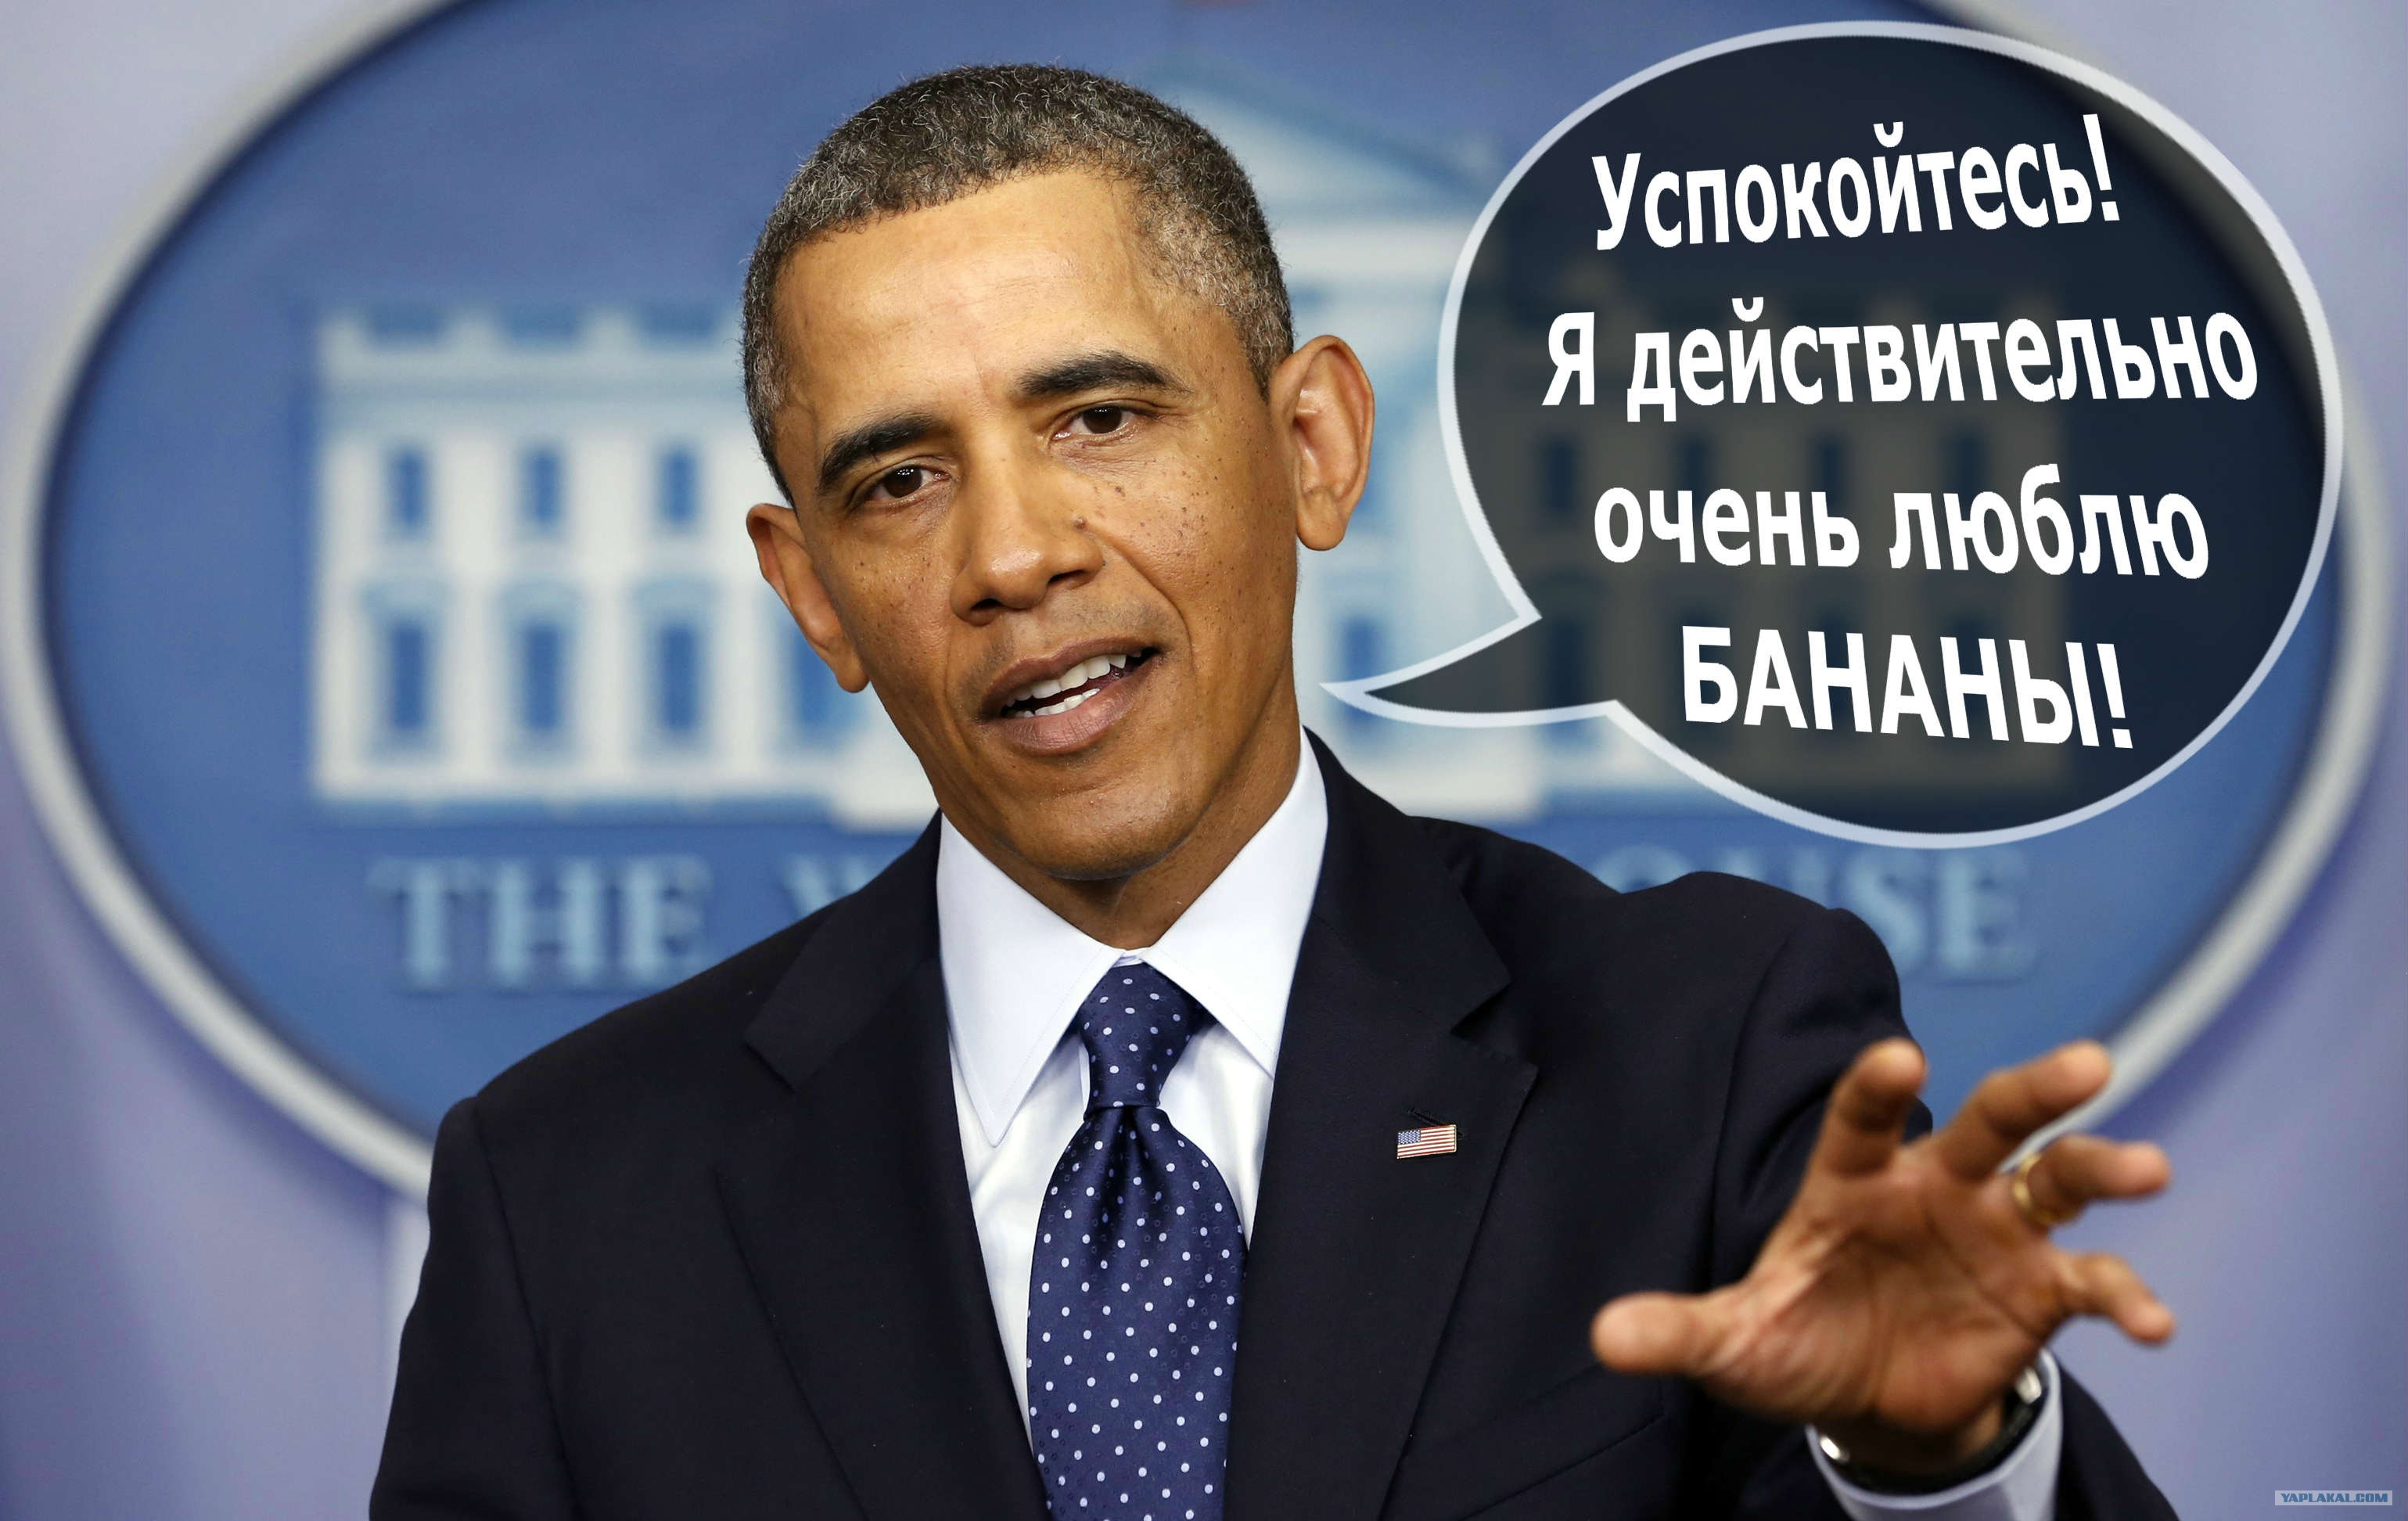 barack obama dissertation The thesis focuses on the prague speech delivered by president barack obama  on 2  its aim is to trace the ideology of barack obama in the speech.